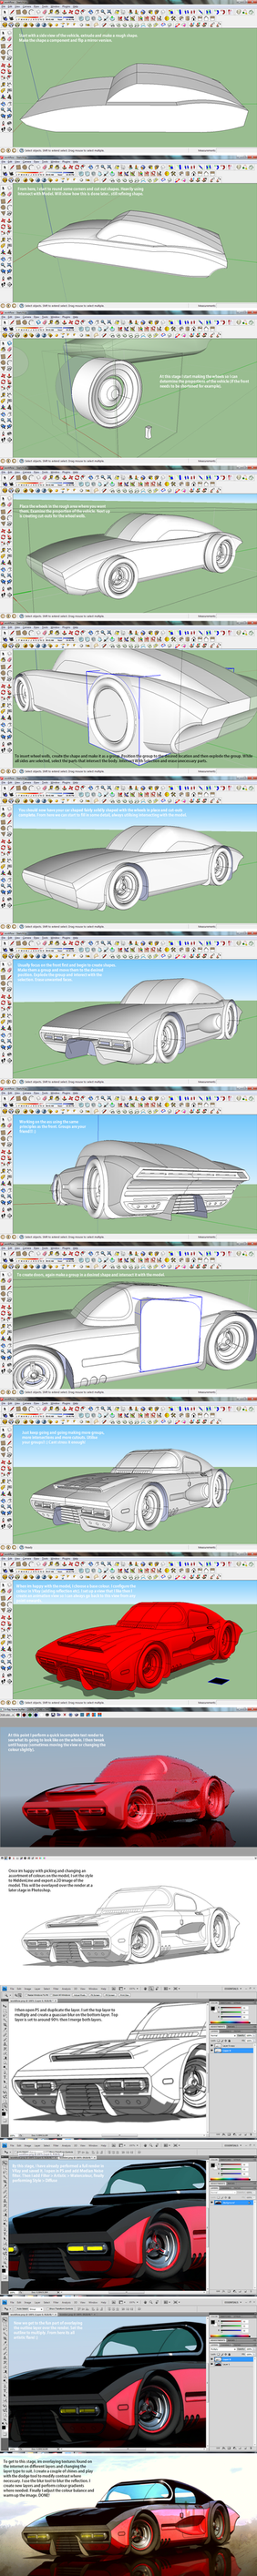 Bomber coupe SKETCHUP WORKFLOW - start to finish by aconnoll